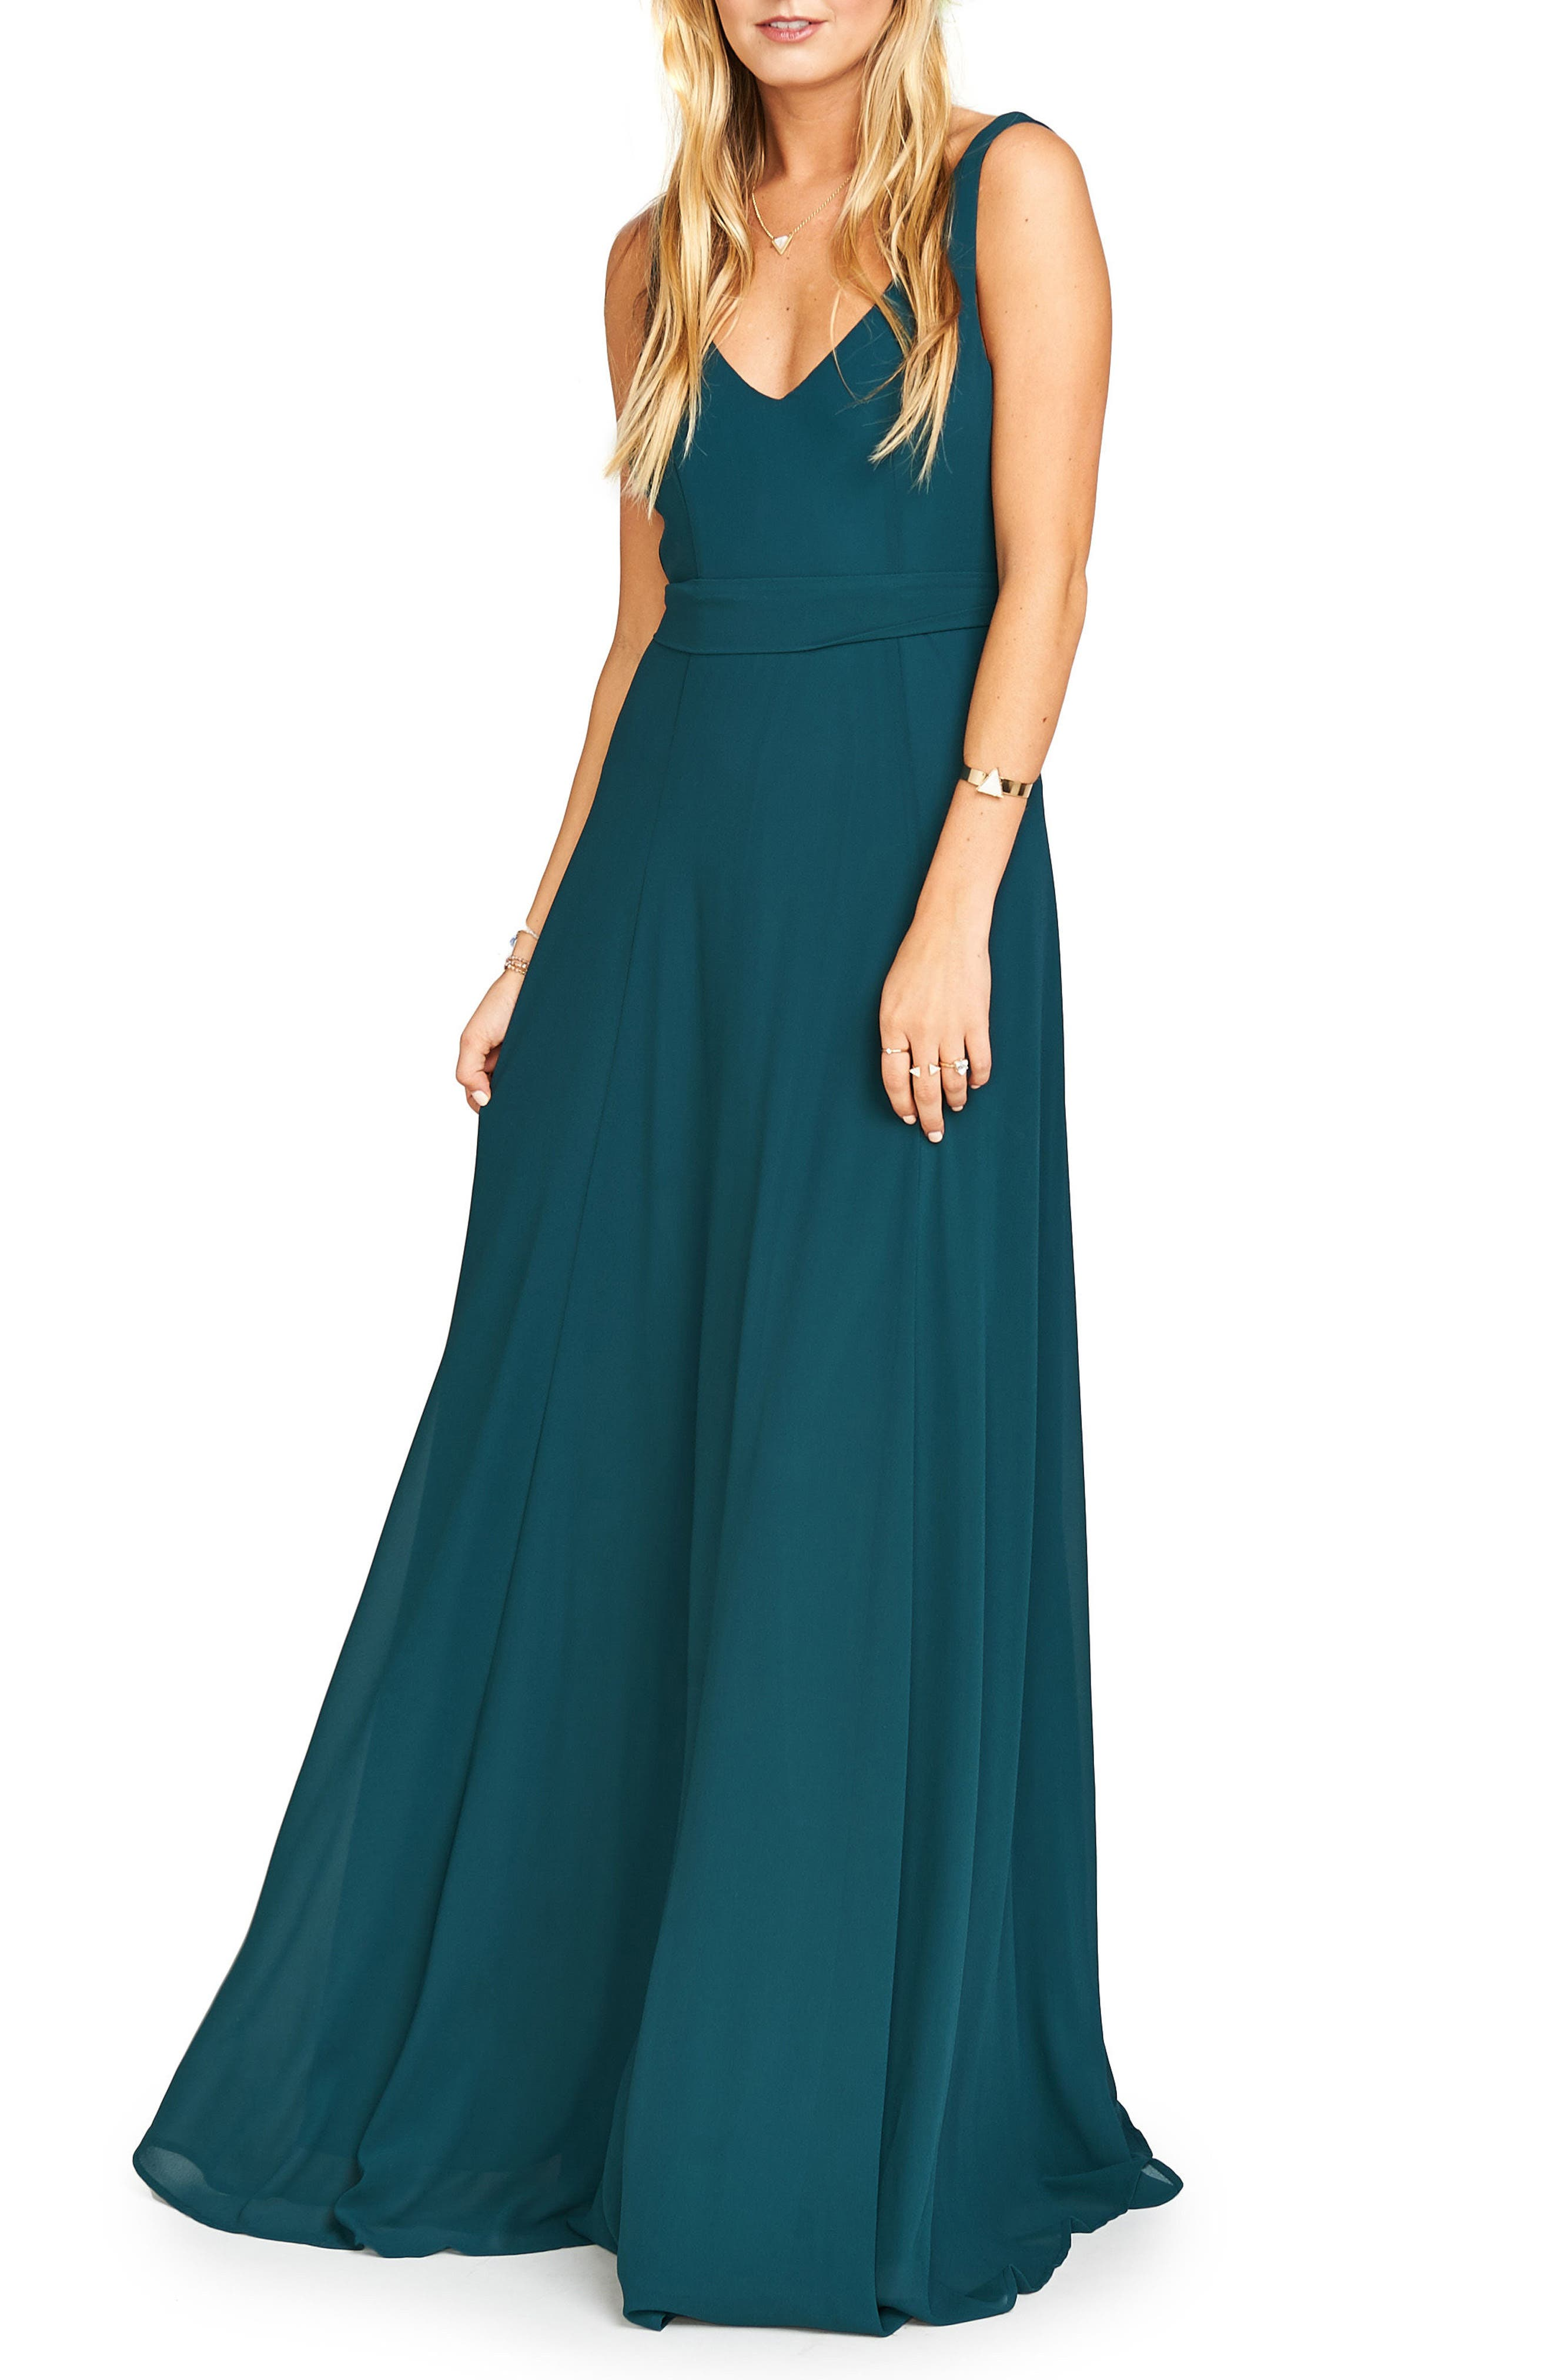 Blue Dress with Green